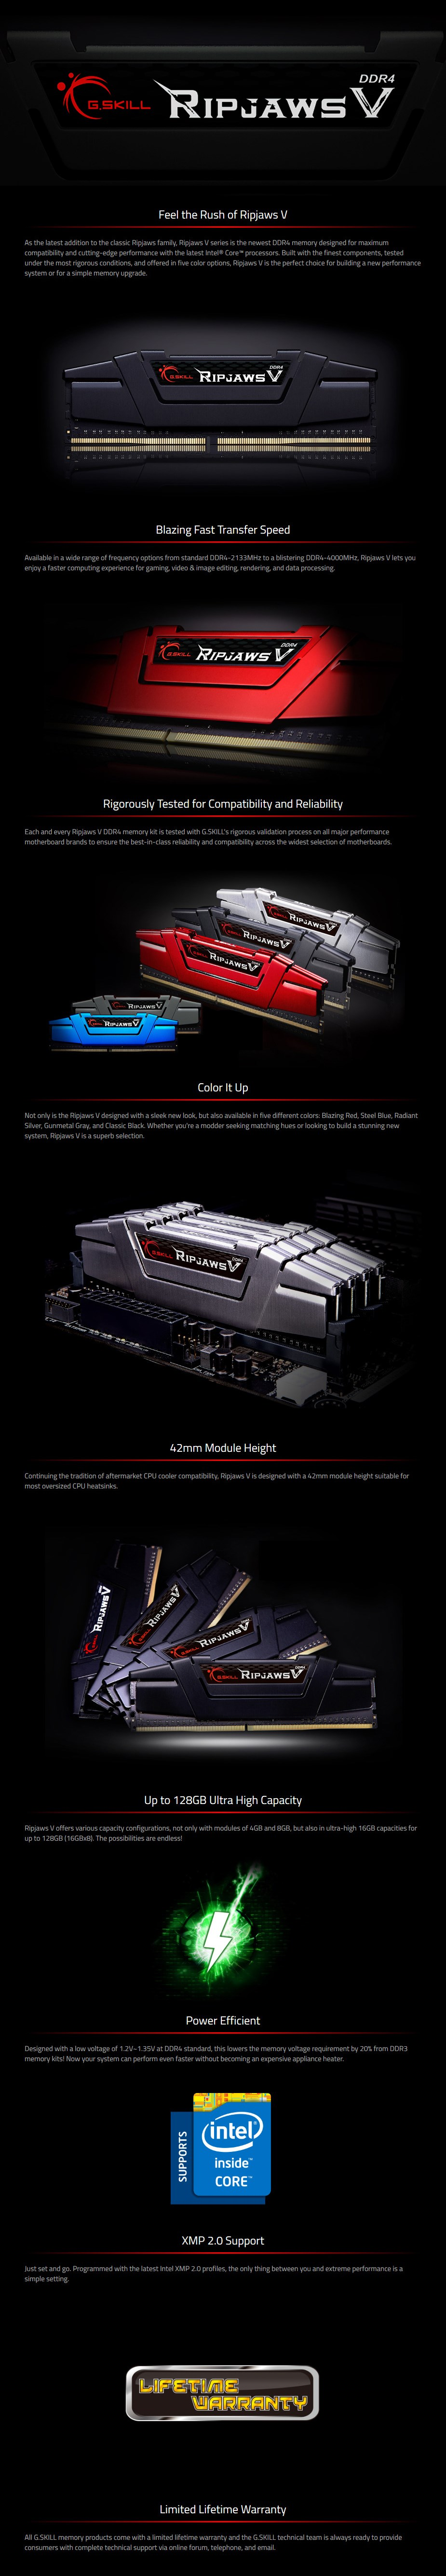 G.Skill Ripjaws V 32GB (4x 8GB) DDR4 4000MHz Memory - Overview 1